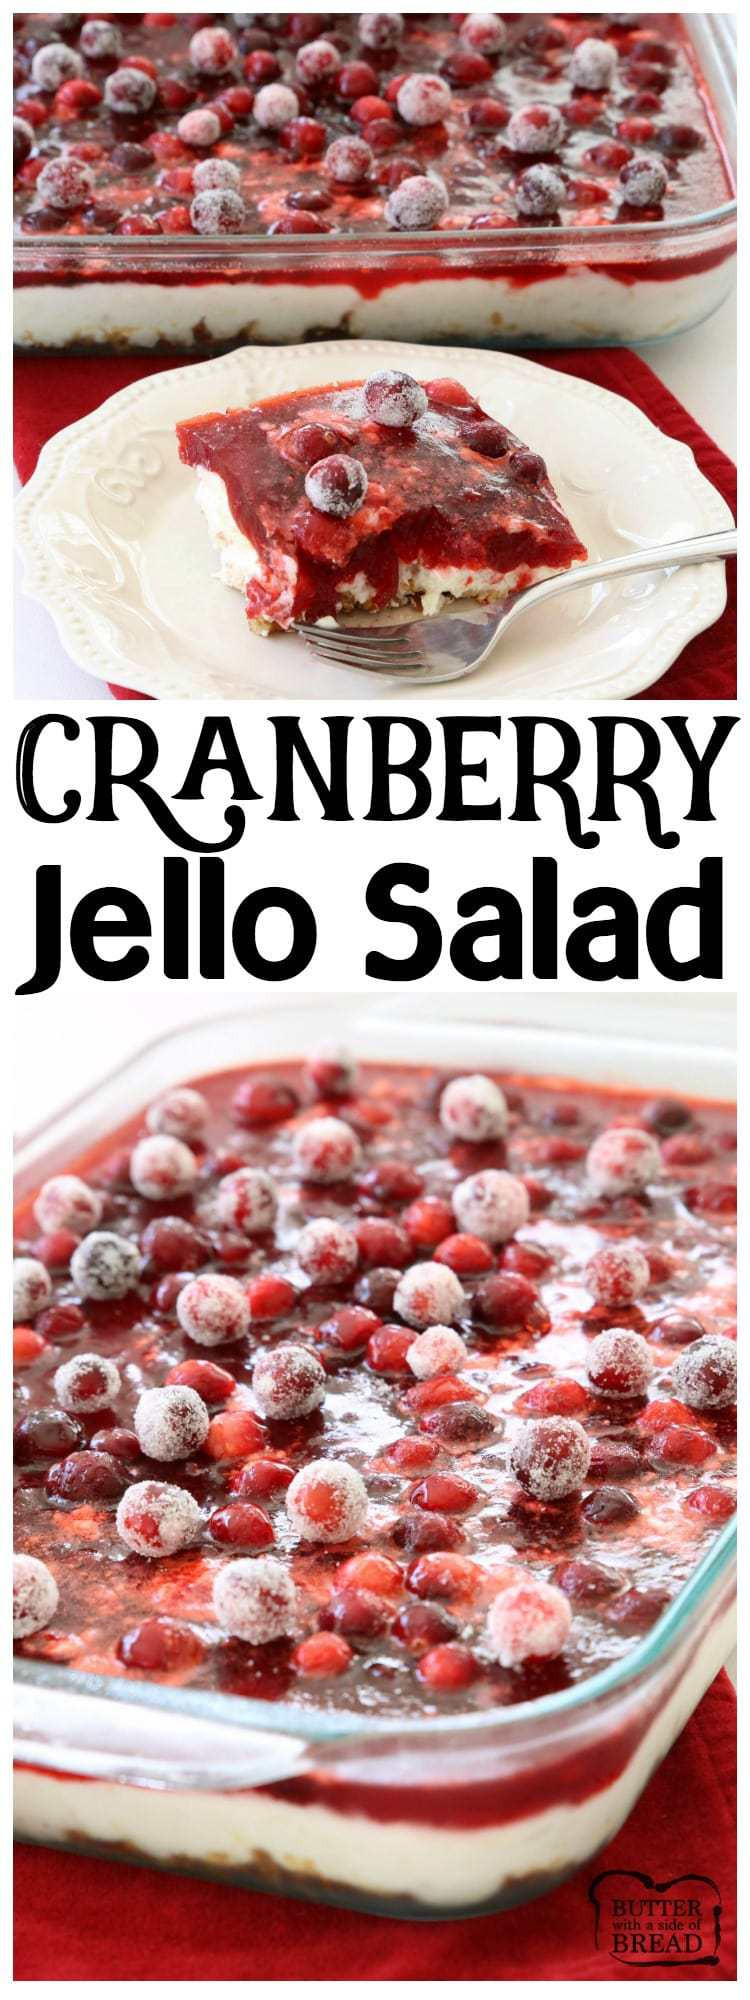 Cranberry Salad Recipes For Thanksgiving  CRANBERRY JELLO SALAD Butter with a Side of Bread